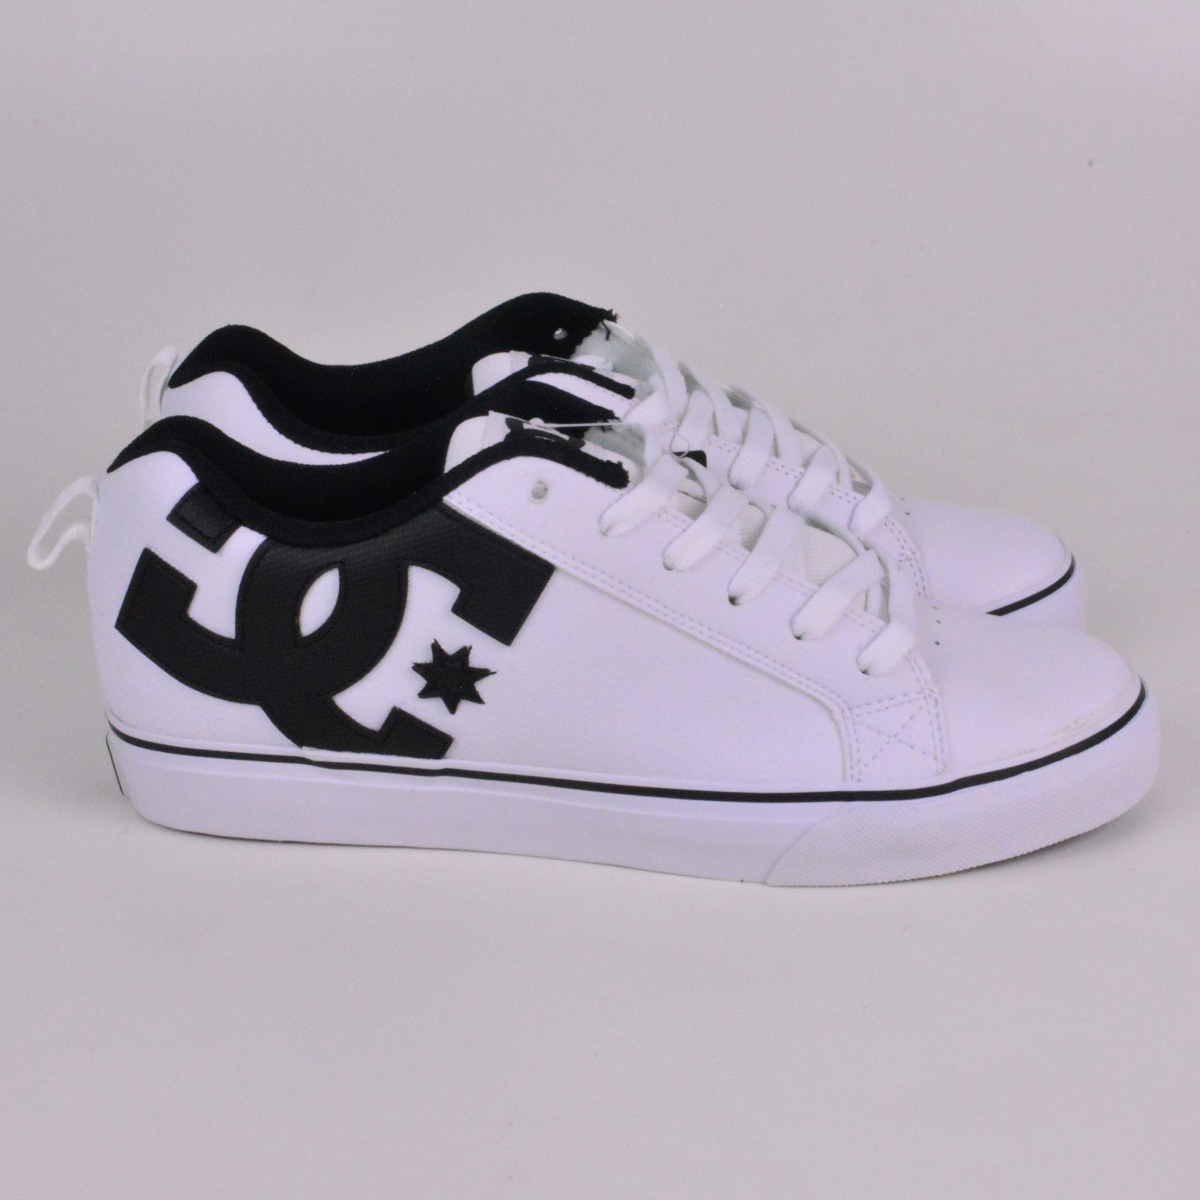 tênis dc shoes court vulc white. Carregando zoom. eb4ea706a0a55